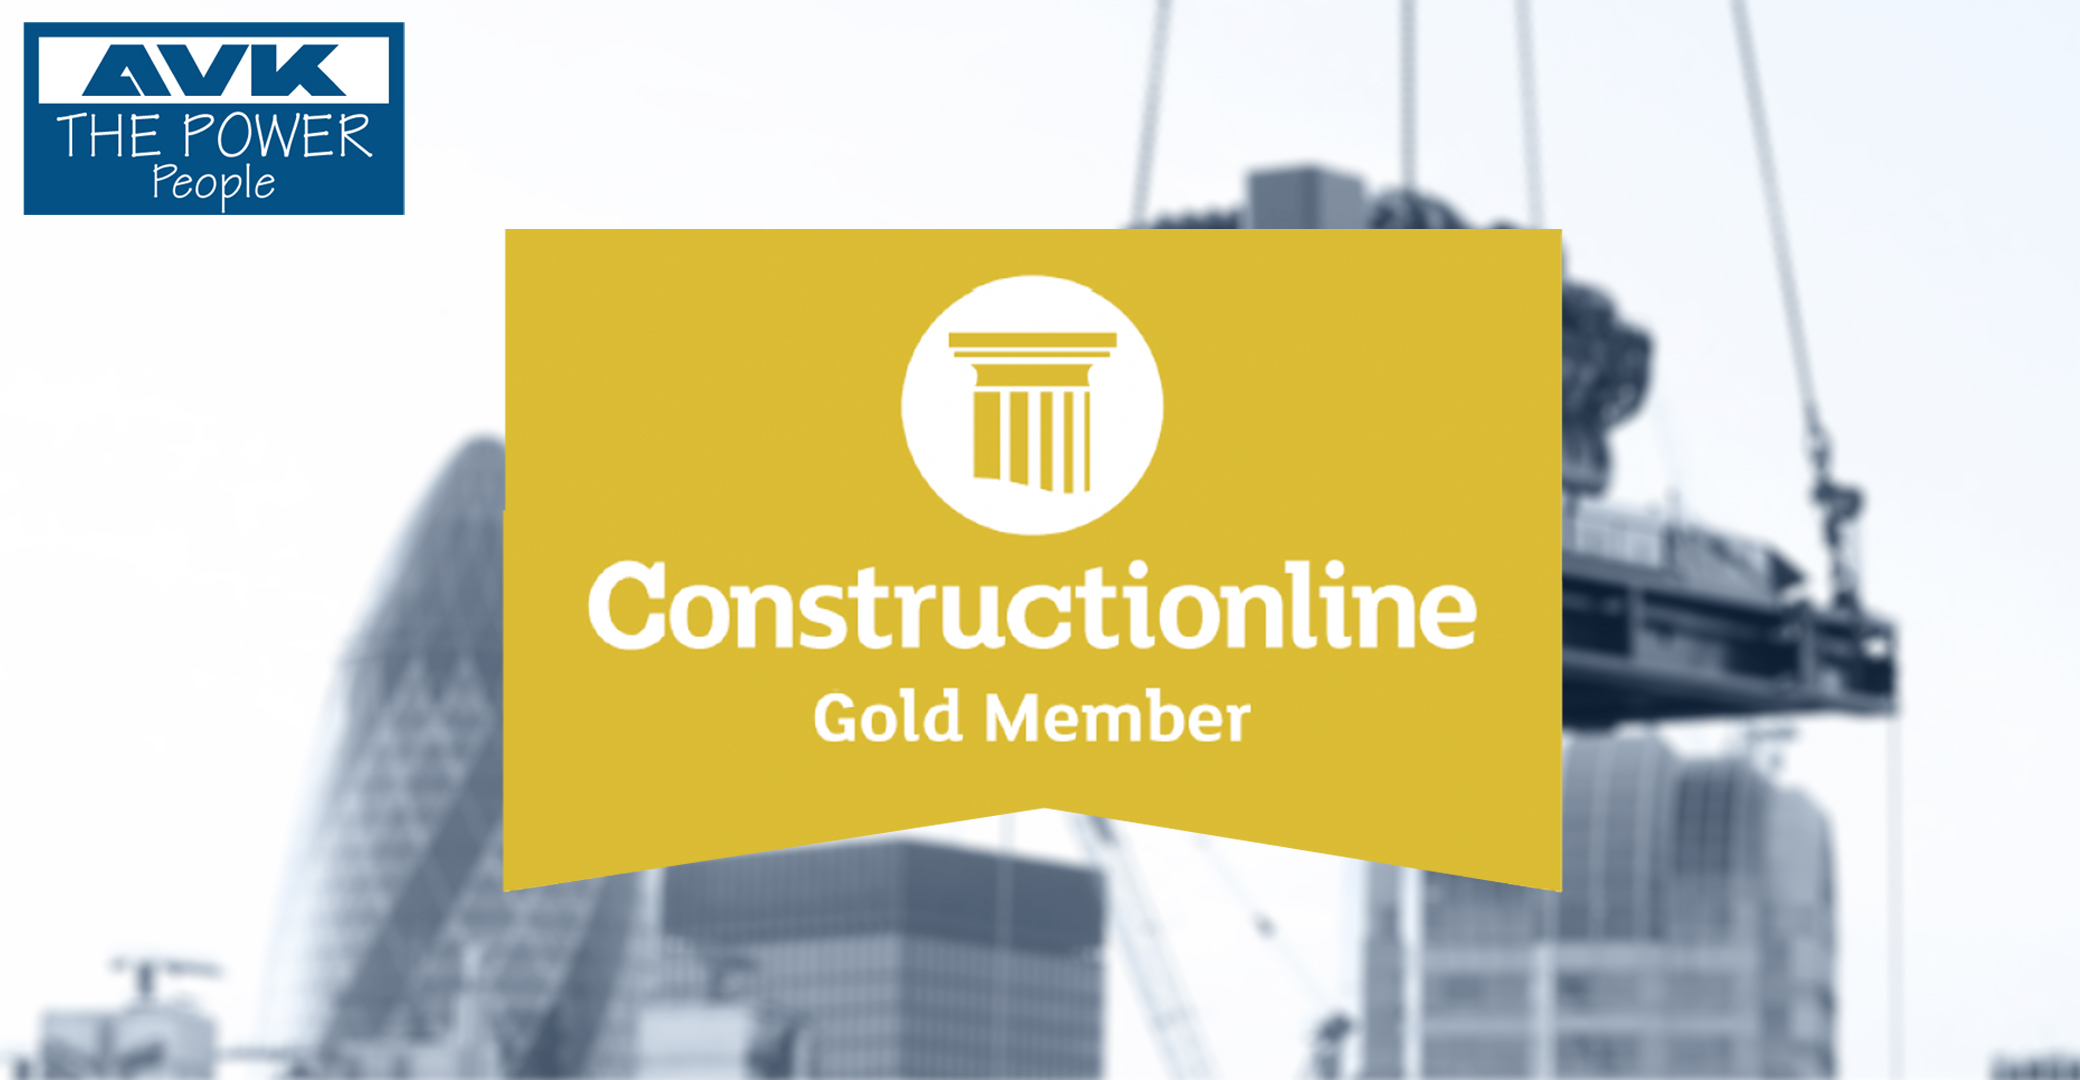 AVK Attains Constructionline Gold Membership